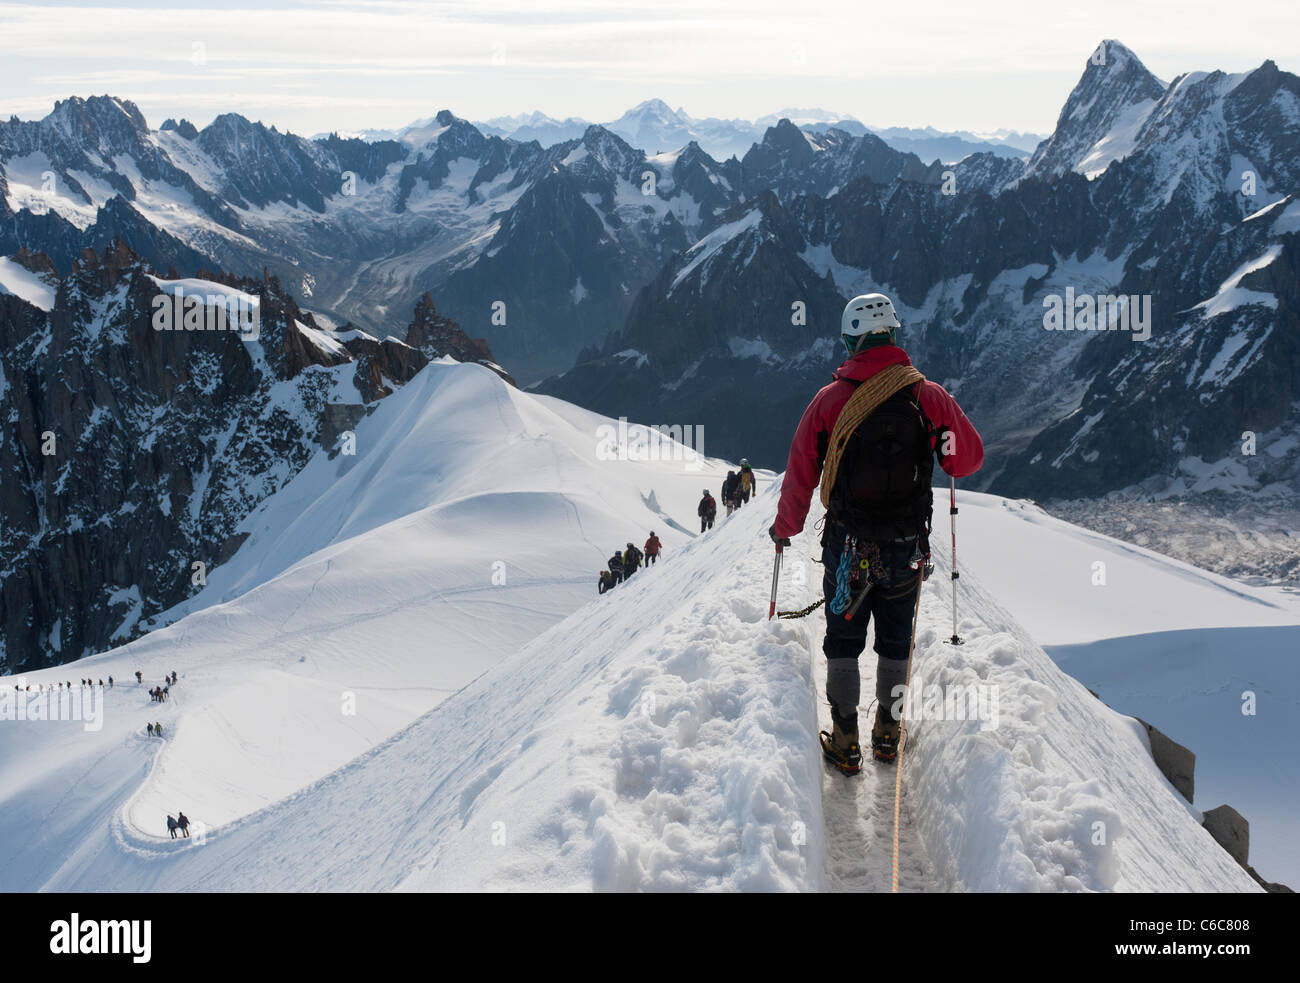 Climbers walking down the airy ridge of Aiguille du Midi at Chamonix, France Stock Photo